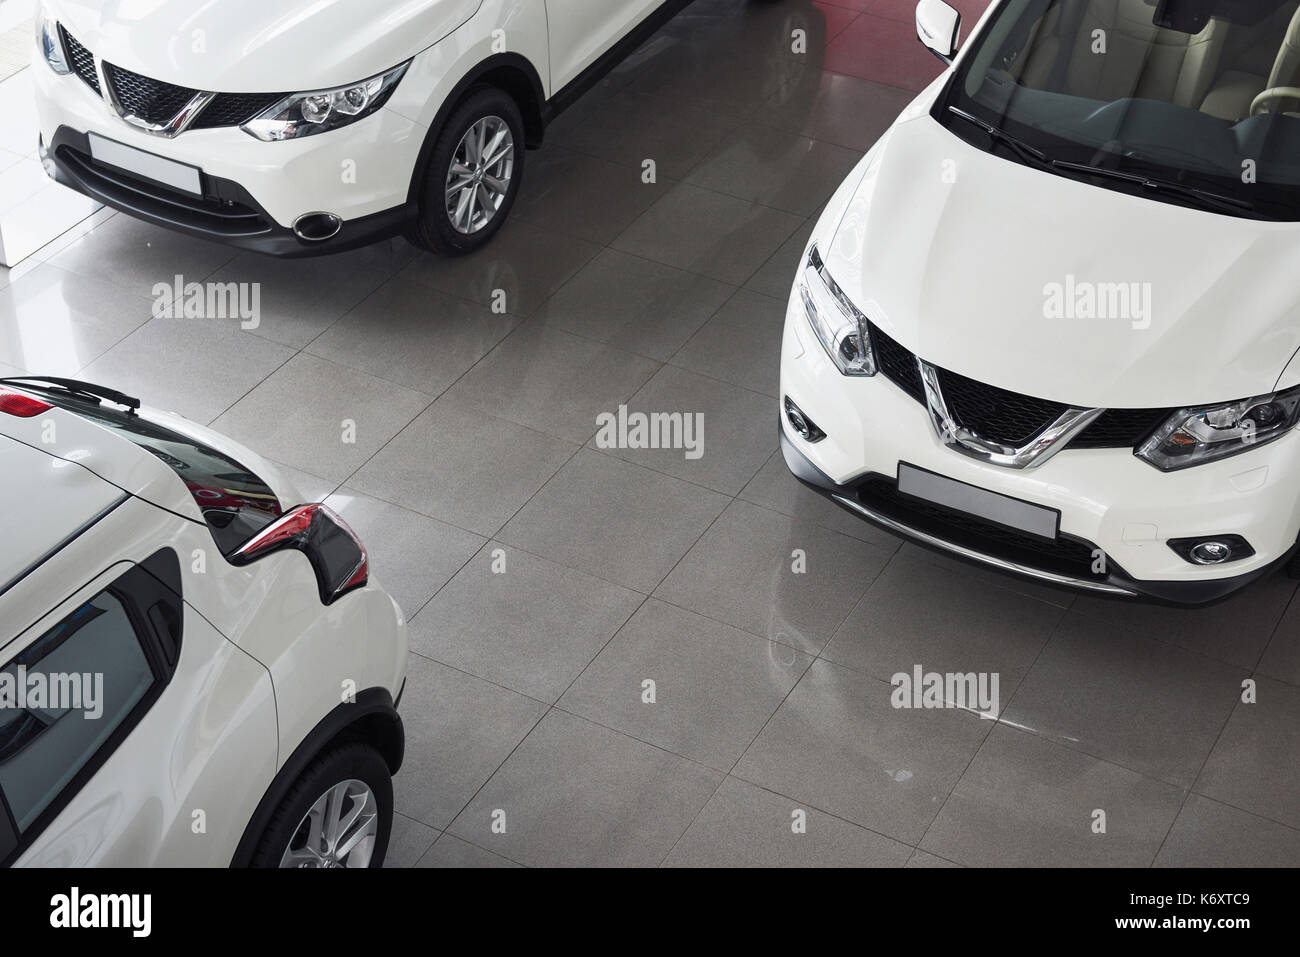 Wide Shot Of Car Stock Photos & Wide Shot Of Car Stock Images - Alamy